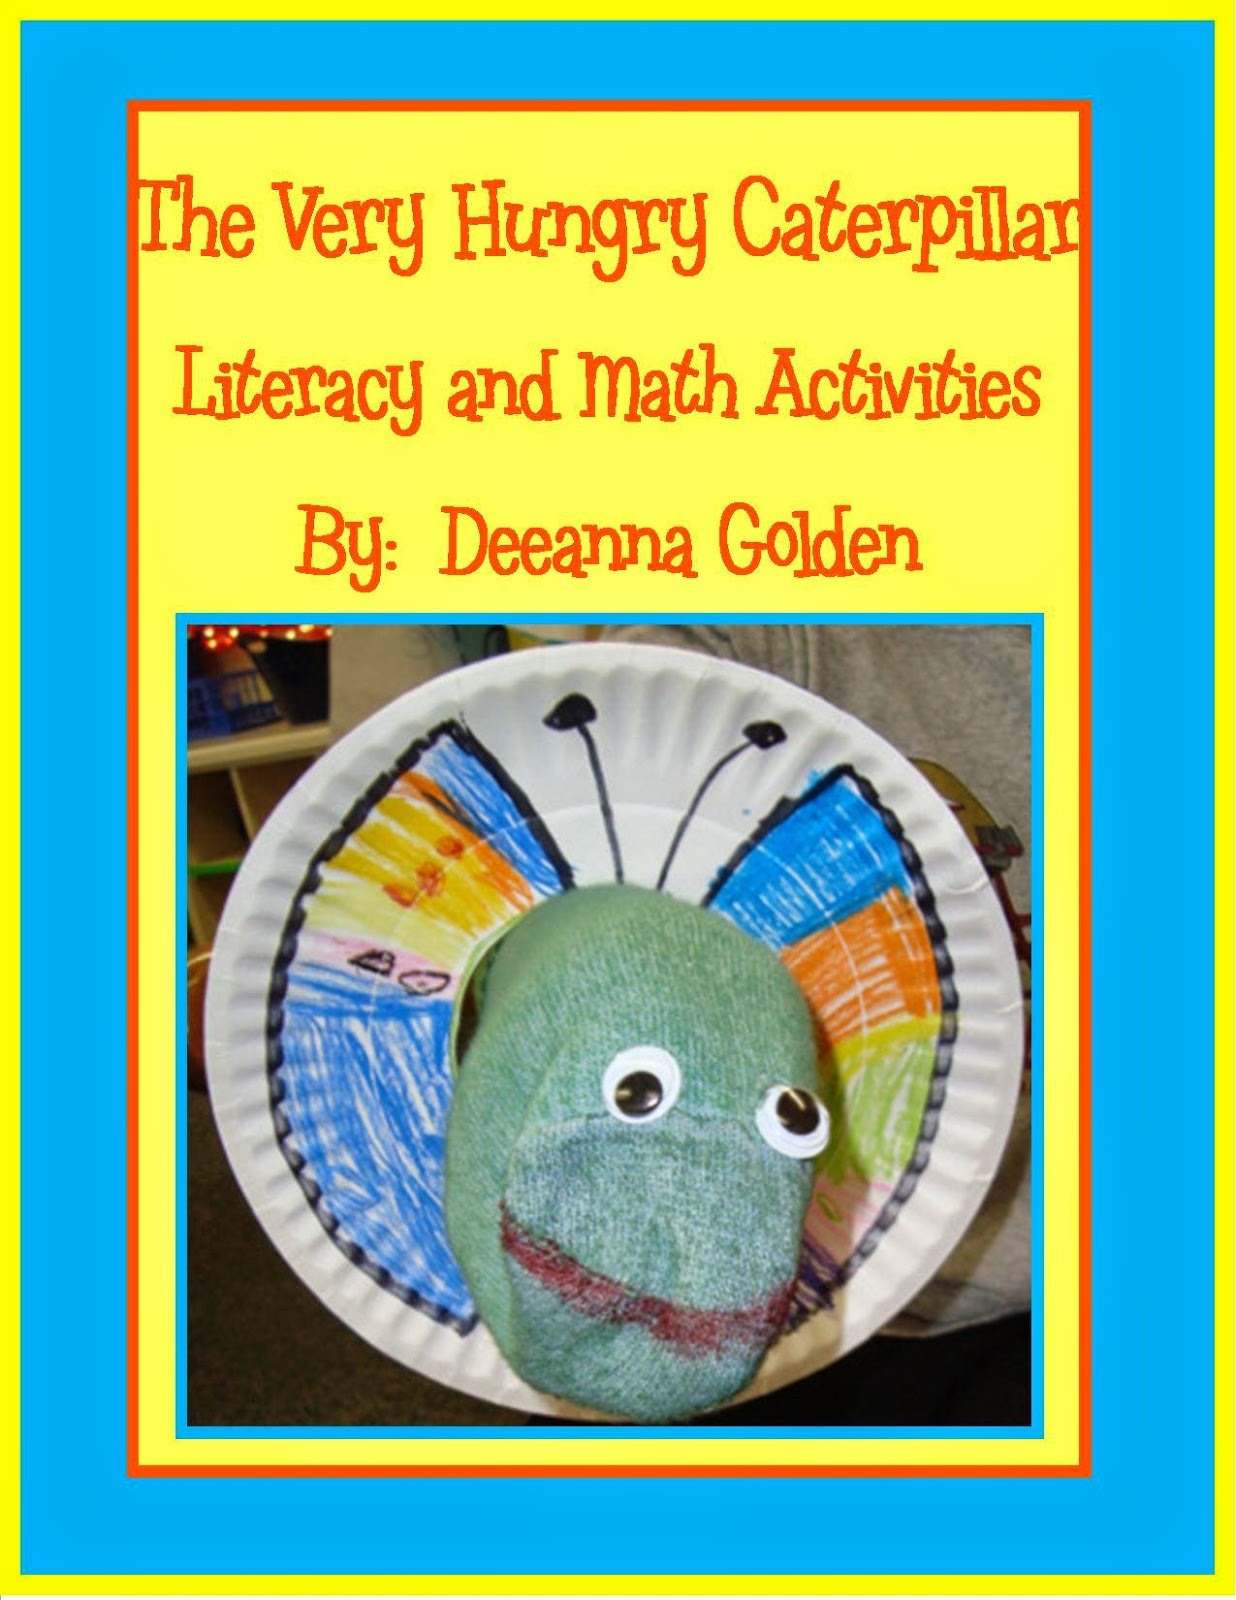 http://www.teacherspayteachers.com/Product/The-Very-Hungry-Caterpillar-Activities-234930